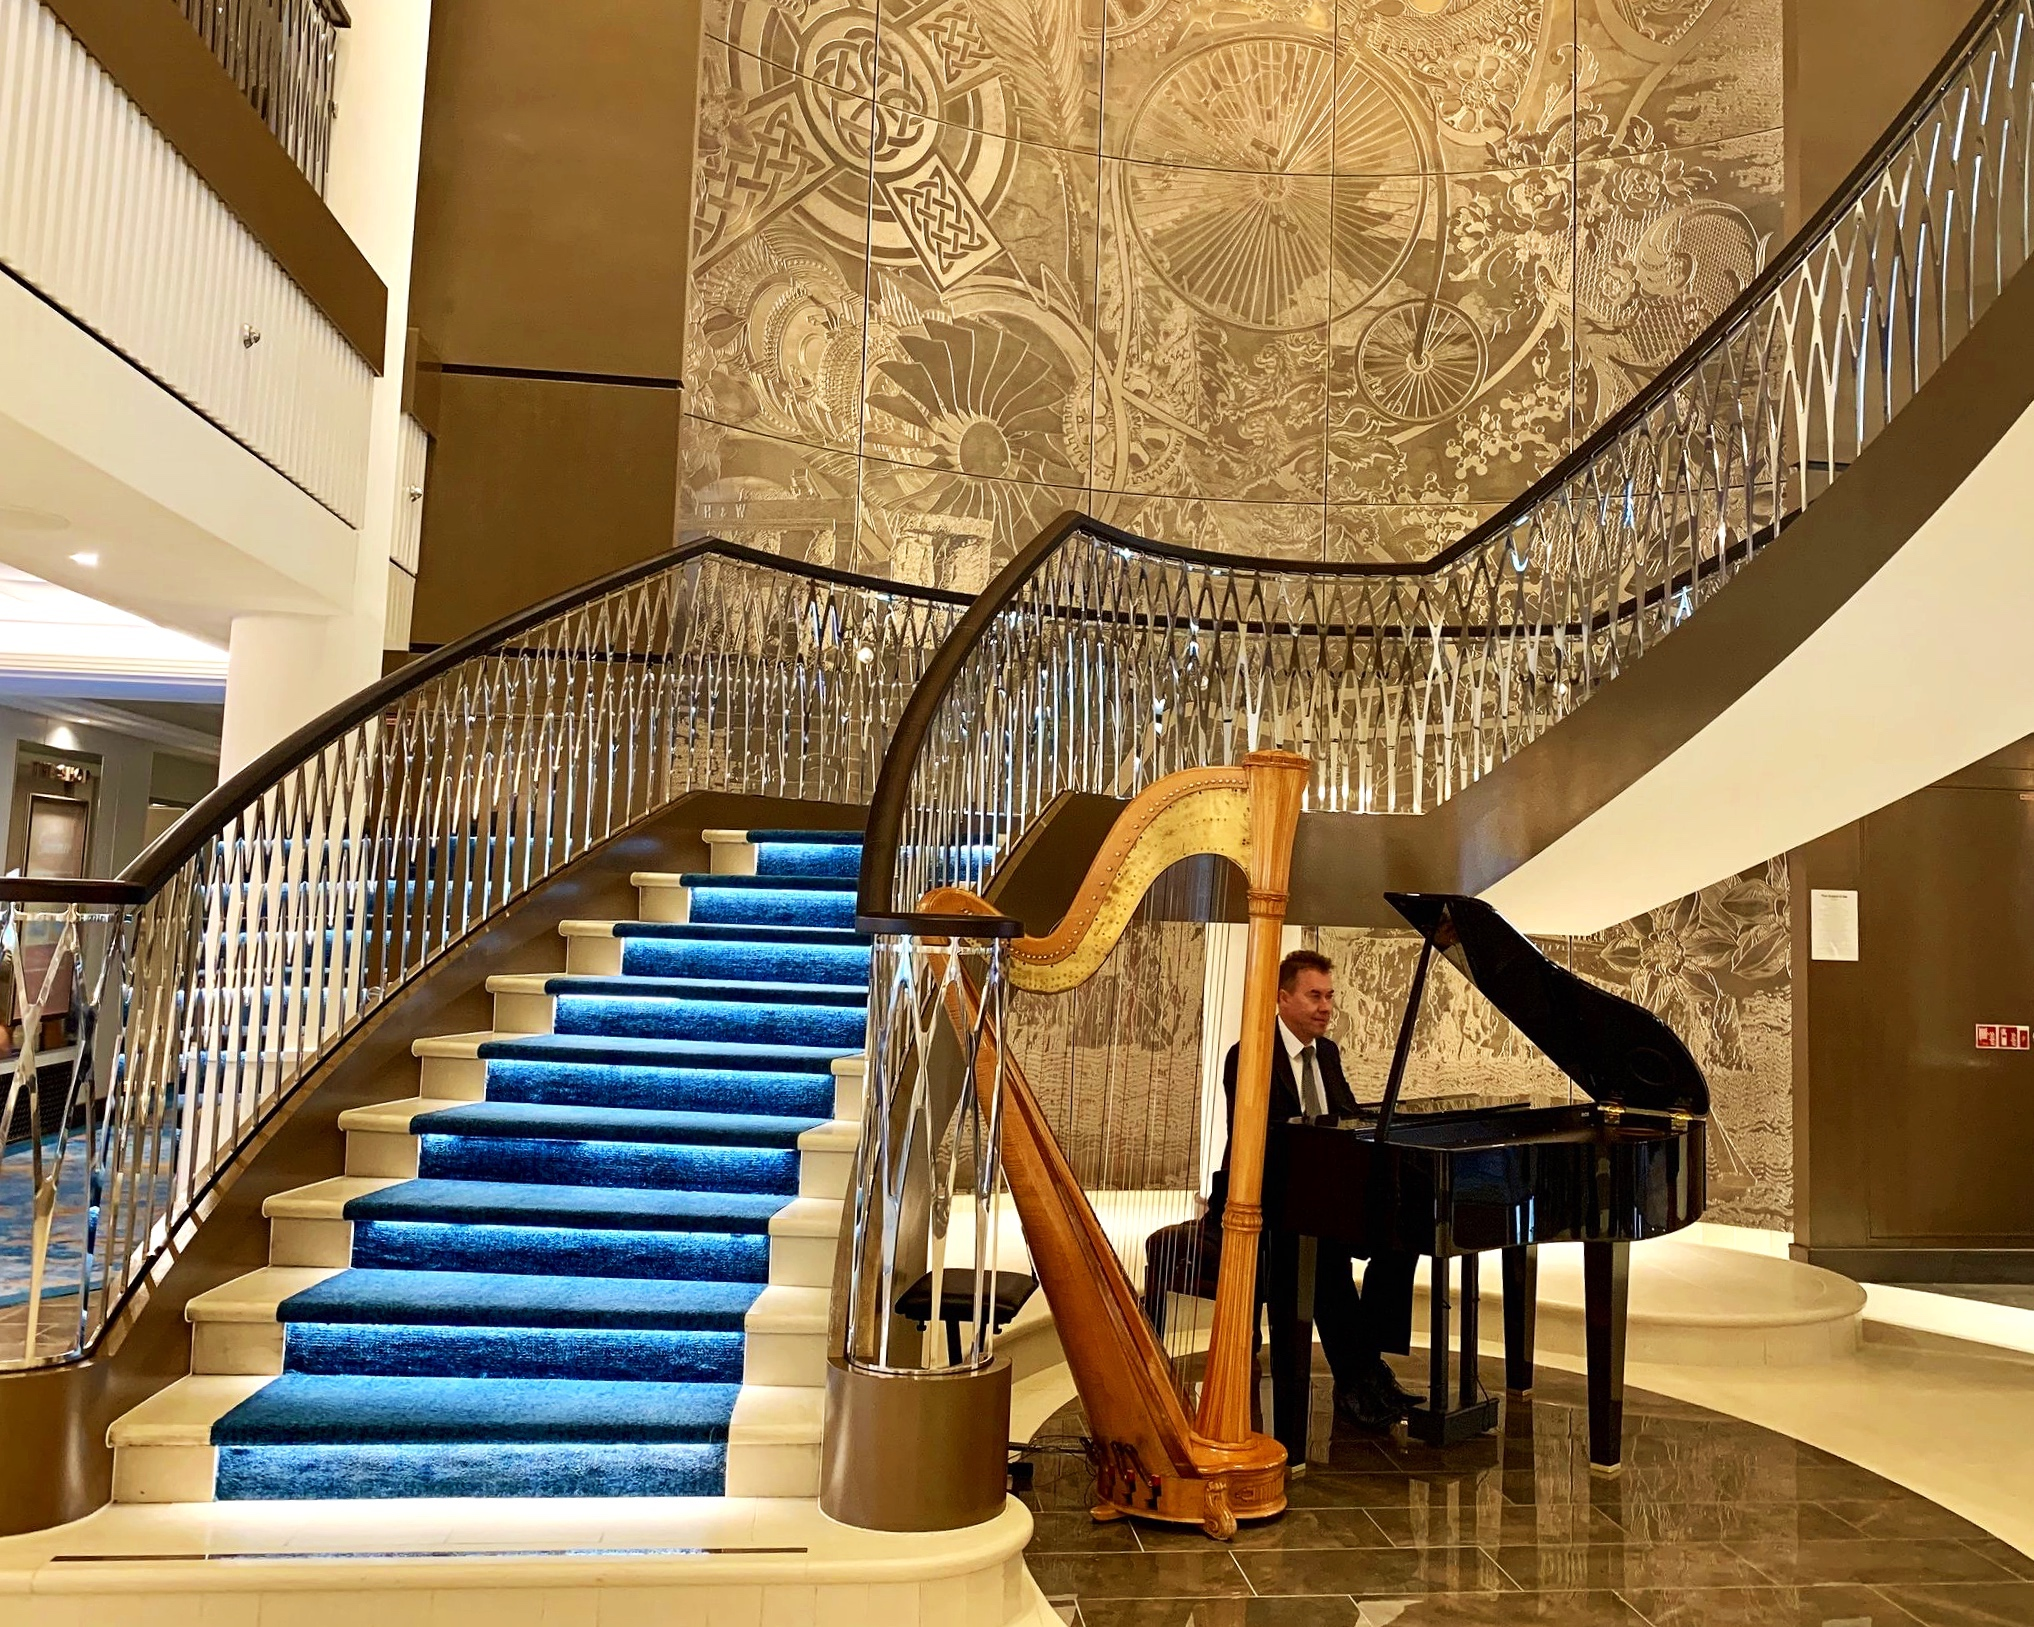 The elegant sweeping staircase